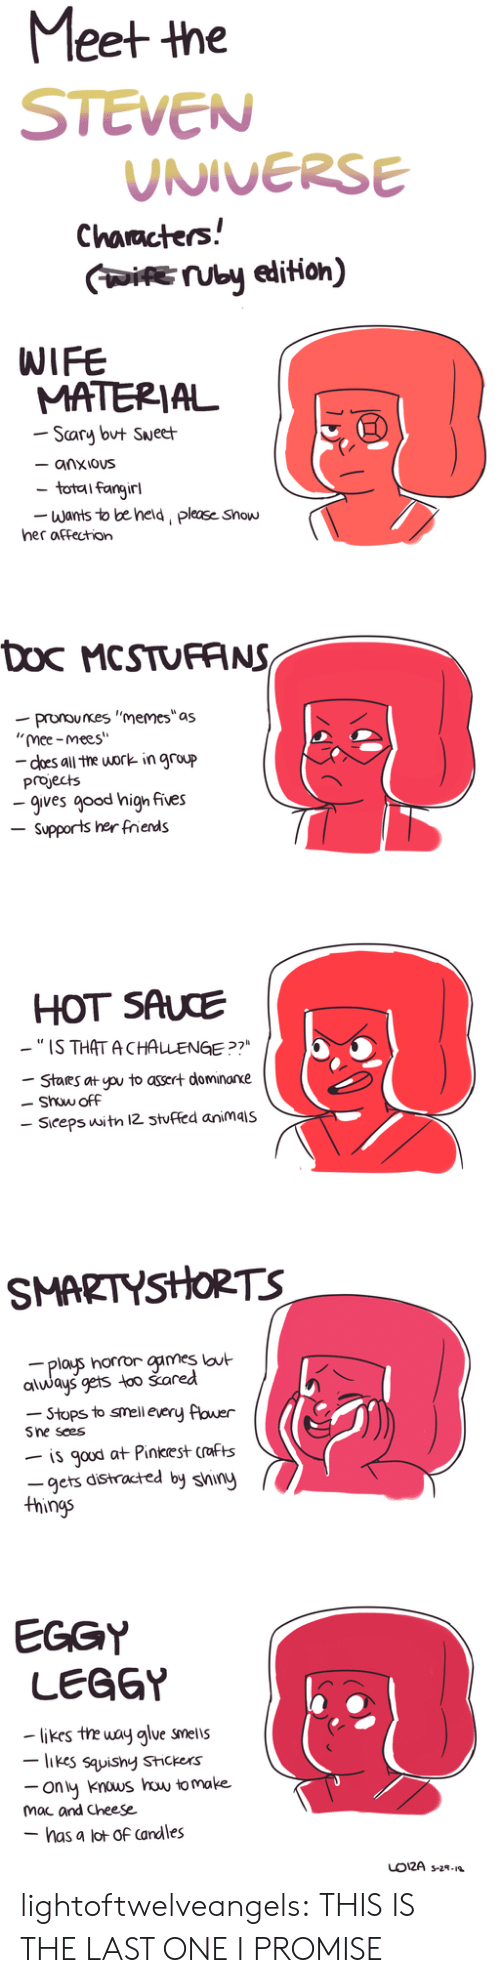 "Smell, Tumblr, and Work: Meet the  STEVEN  UNIVERSE  Characters!  IUby edition)  WIFE  MATERIAL  Scary but Sueet  - anxious  total fangirl  Wants to be held, please Show  her affection  Doc MCSTUFANS  -pronounes ""memes""as  ""mee-mees""  - does all the work in group  projects  -gives good high fives  Supports her frends  HOT SAUCE  -""IS THAT ACHALENGE ?7  Stares at pu to assert dominarxe  Show off  Siceps witn 12 3tuffed animais  SMARTYSHORTS  plays horror games lout  always gets too šared  -Stops to smell every flower  Sne sees  is gaud at Pinkrest crafts  -gets distracted by shiny  things  EGGY  LEGGY  likes the way alue smells  -likes sauishy Stickers  ony knous how to make  mac and Cheese  - has a lot of Candles  LO12A s-2- lightoftwelveangels:  THIS IS THE LAST ONE I PROMISE"